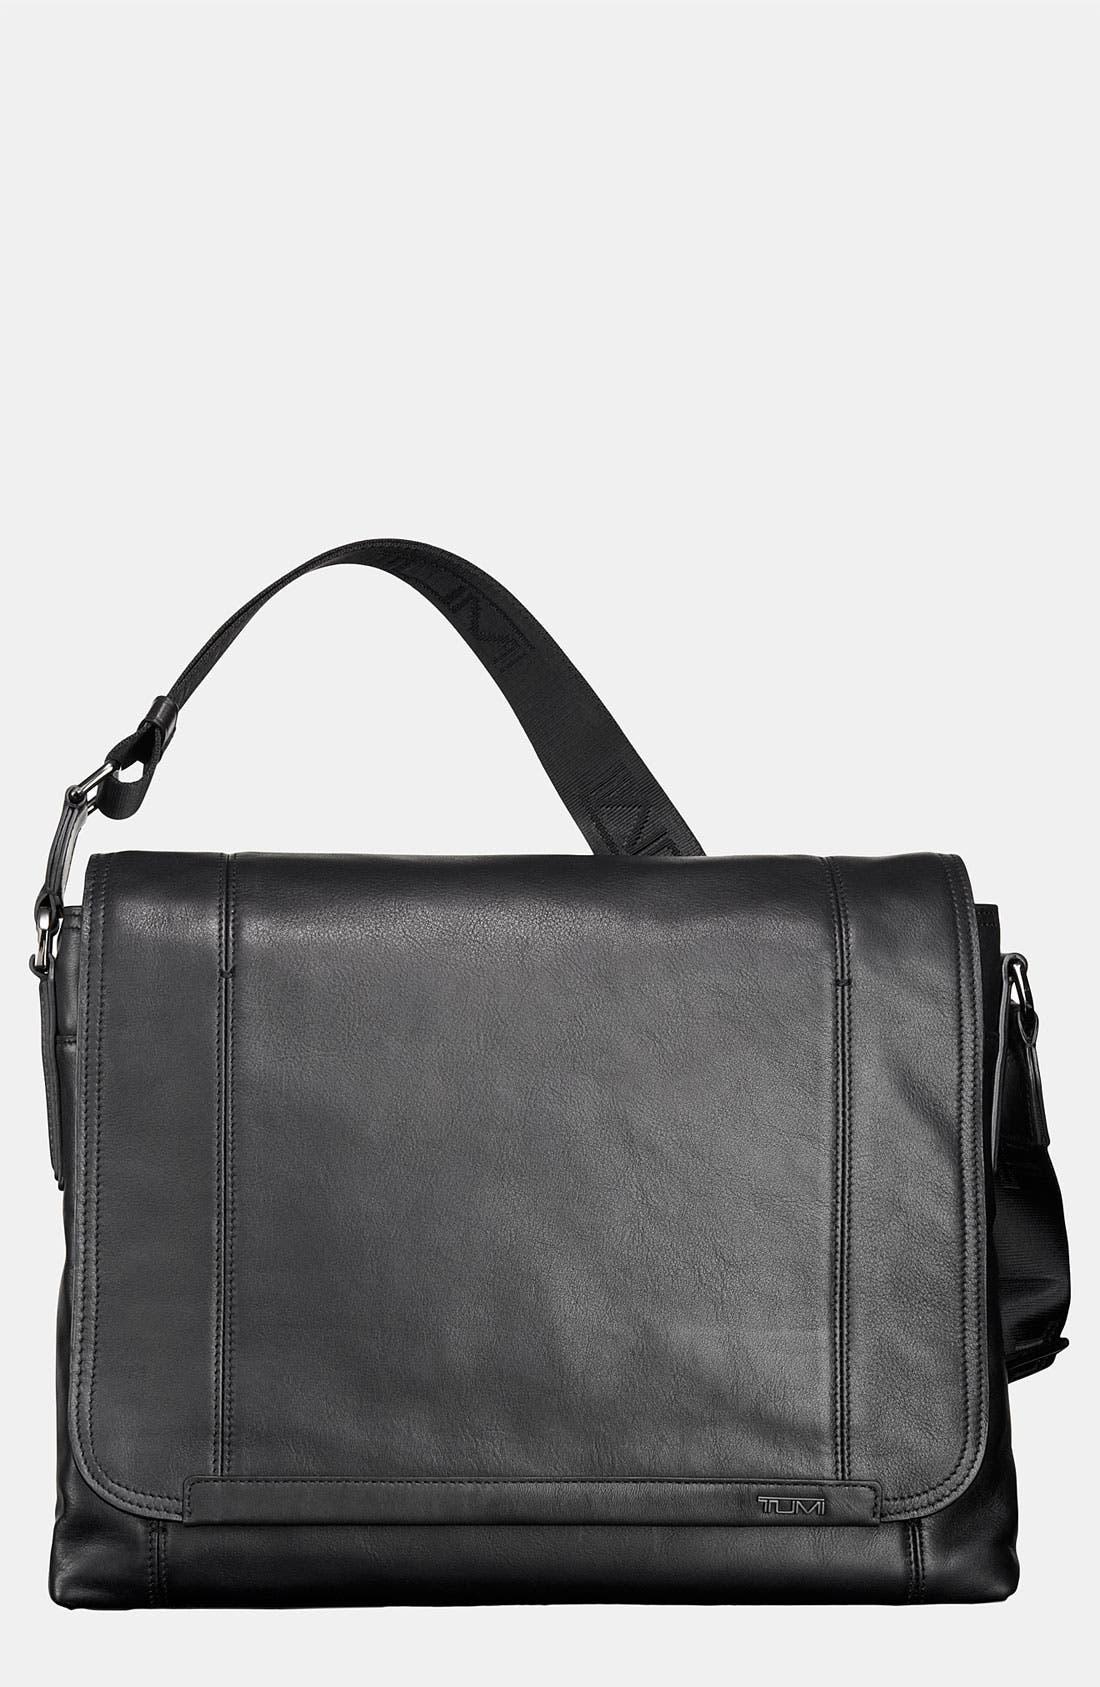 Main Image - Tumi 'Centro - Verona' Flap Messenger Bag